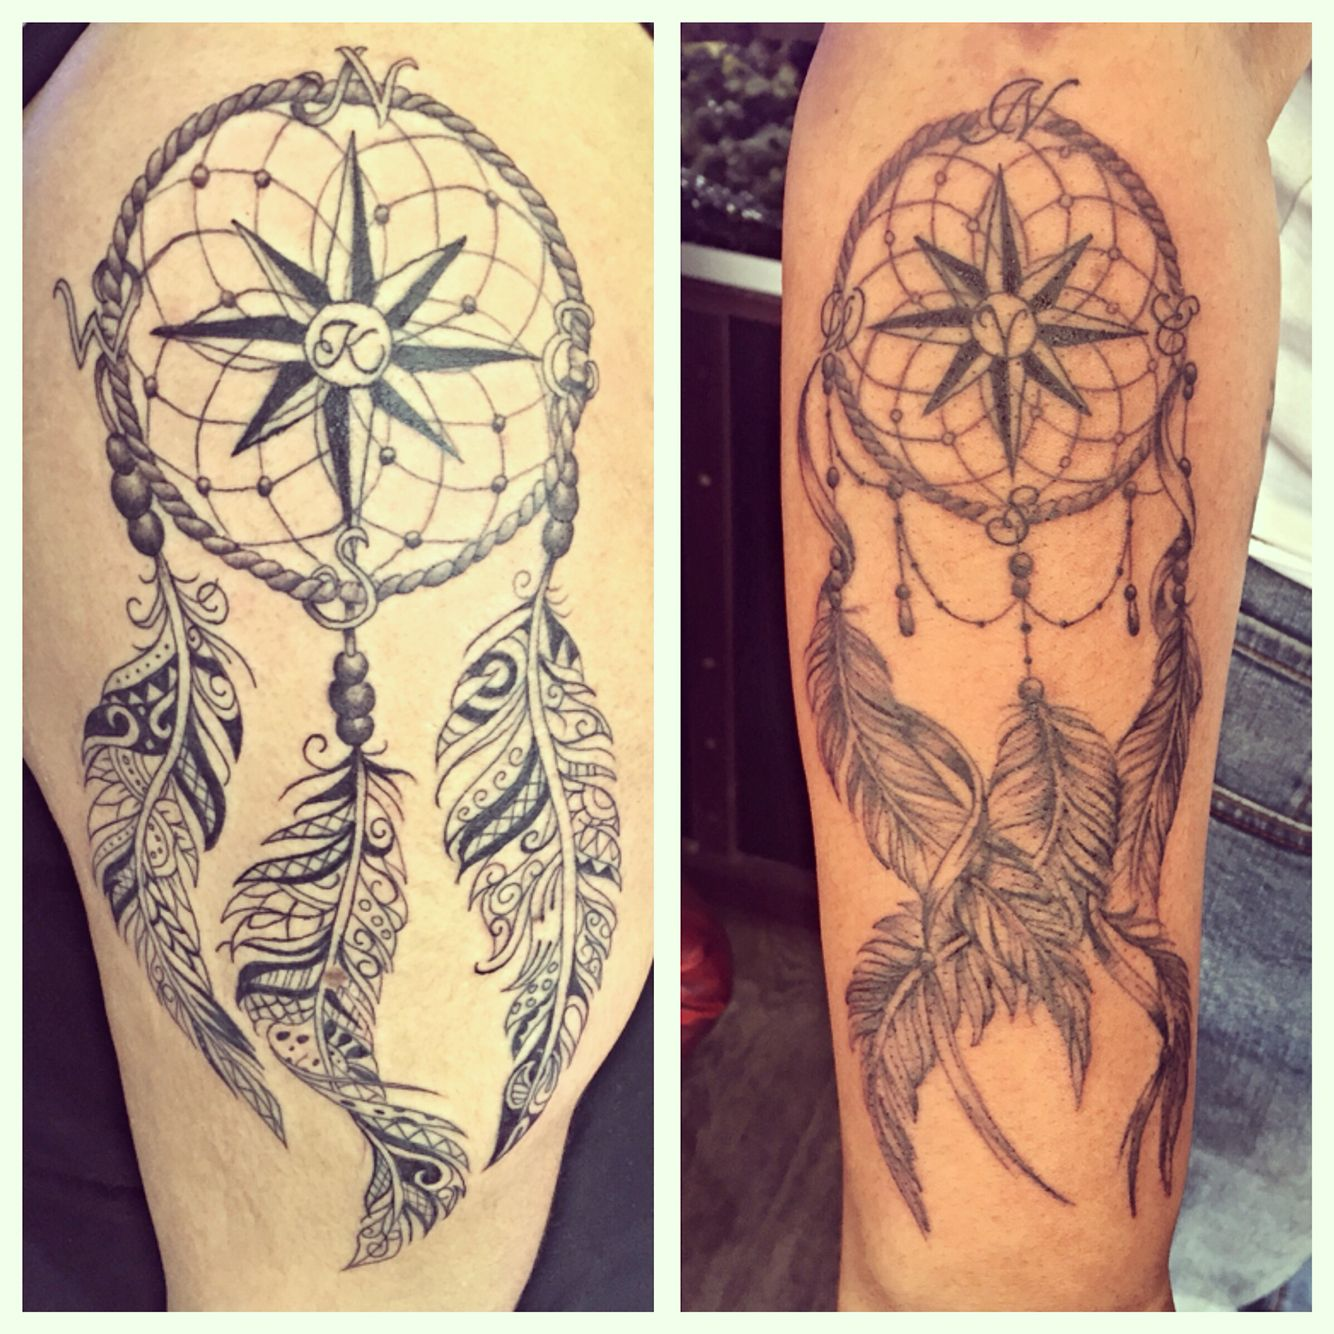 It S Been A Feathery Kind Of Day Matching Dreamcatcher Tattoos 1 Top Arm The Other On Forearm Tattoo Tattoos Tattoos Arm Tattoo Feather Tattoos